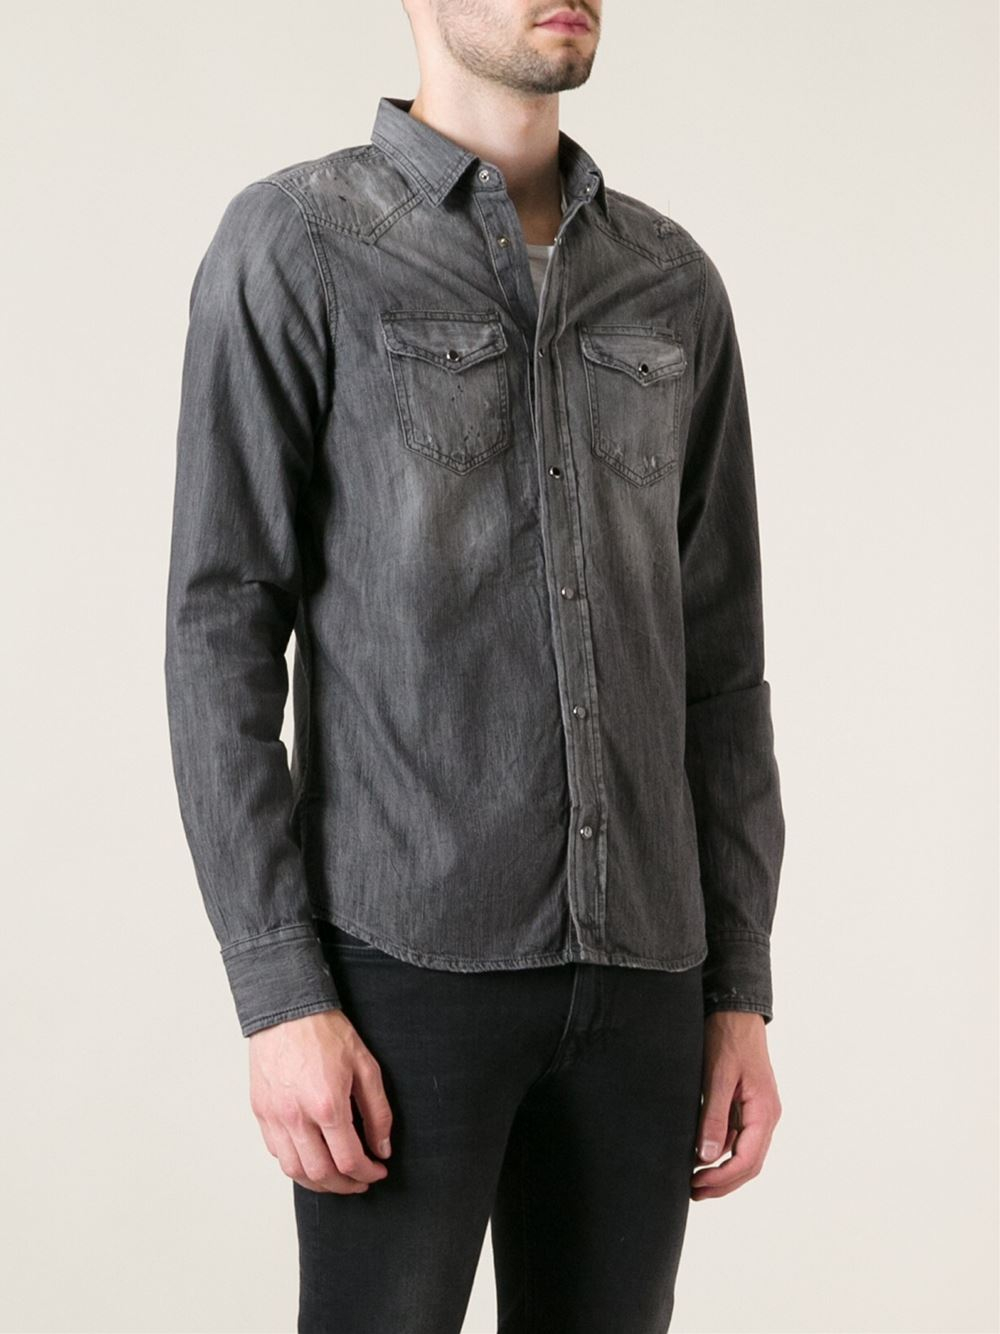 Joe Cotton Ford >> Diesel Denim Shirt in Gray for Men - Lyst